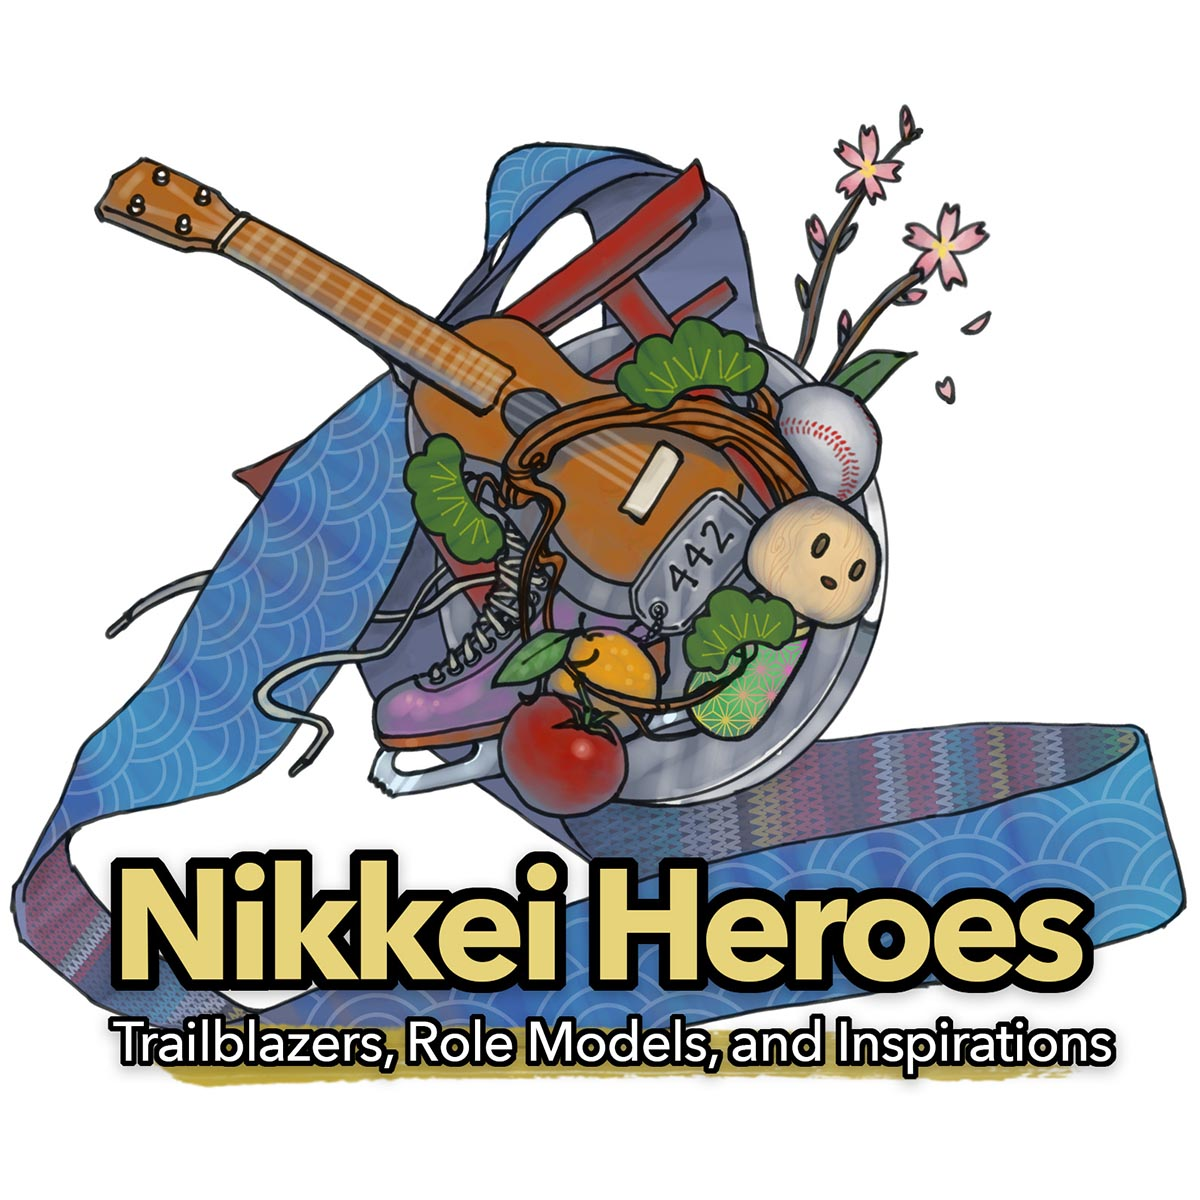 Nikkei Heroes: Trailblazers, Role Models, and Inspirations